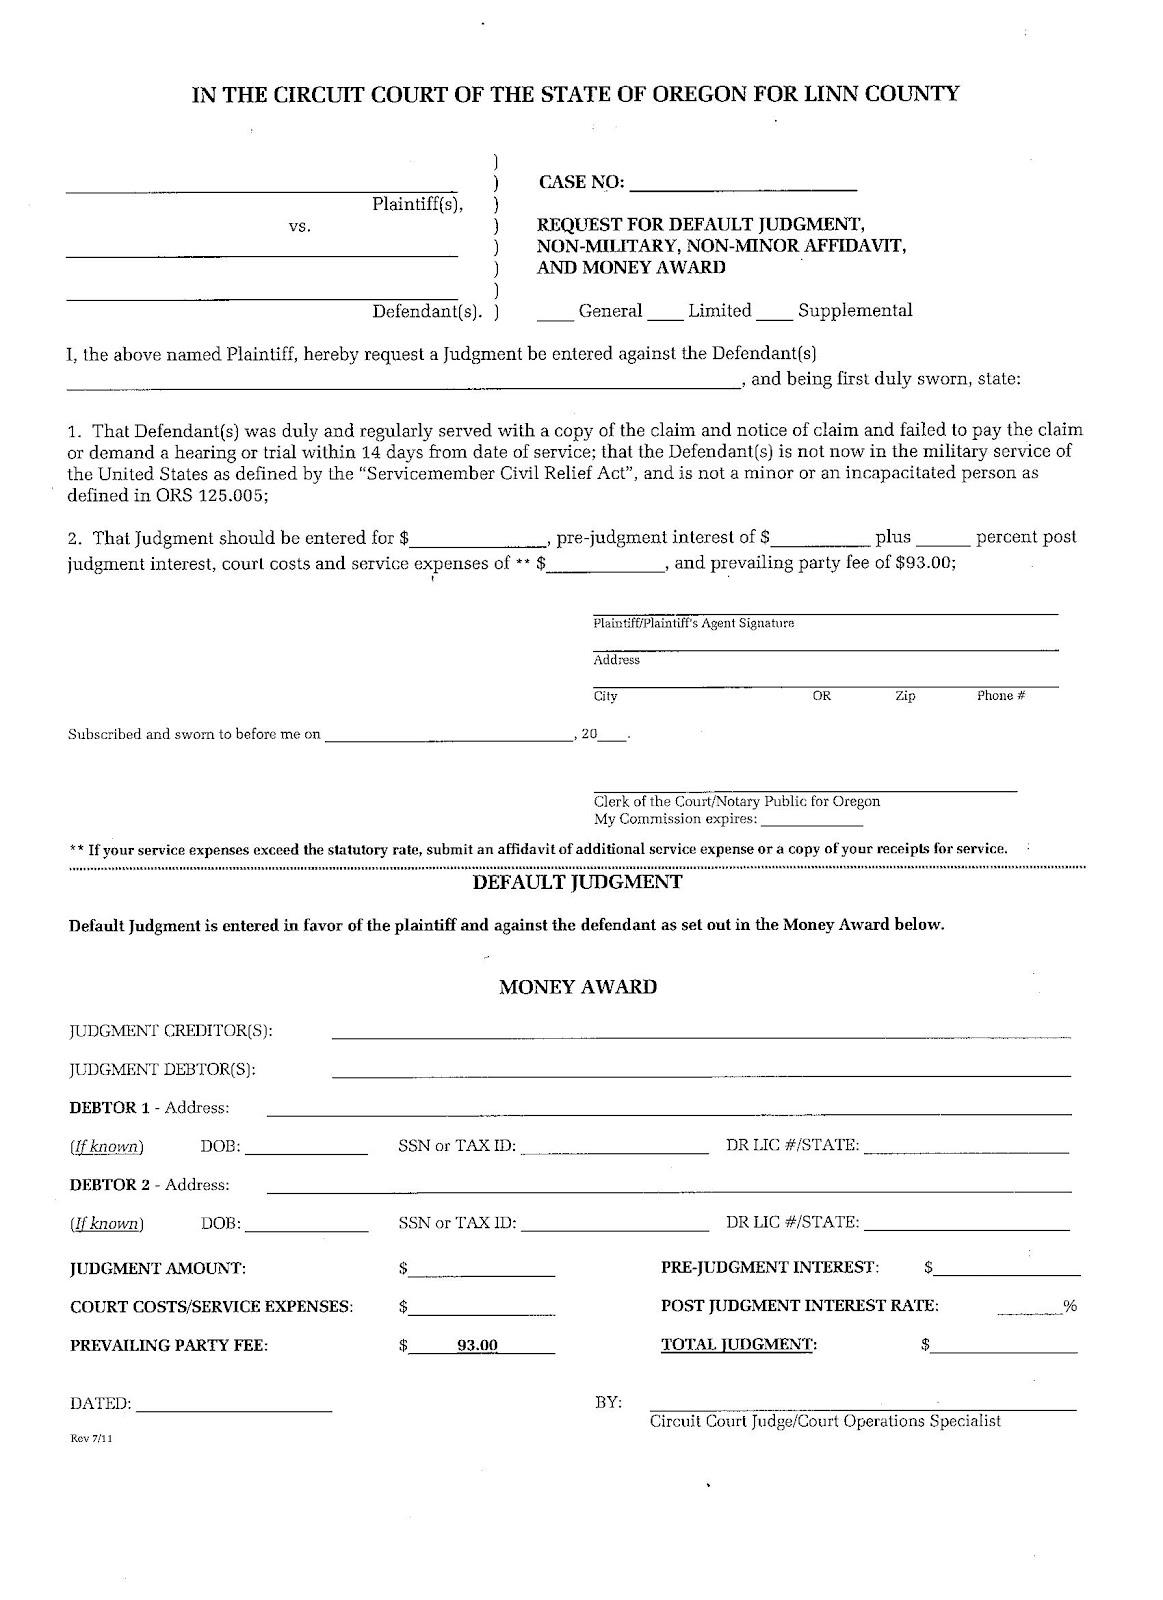 This Is What The Form Looks Like That A Person Uses That Is Owed Money In  Linn County In The State Of Oregon